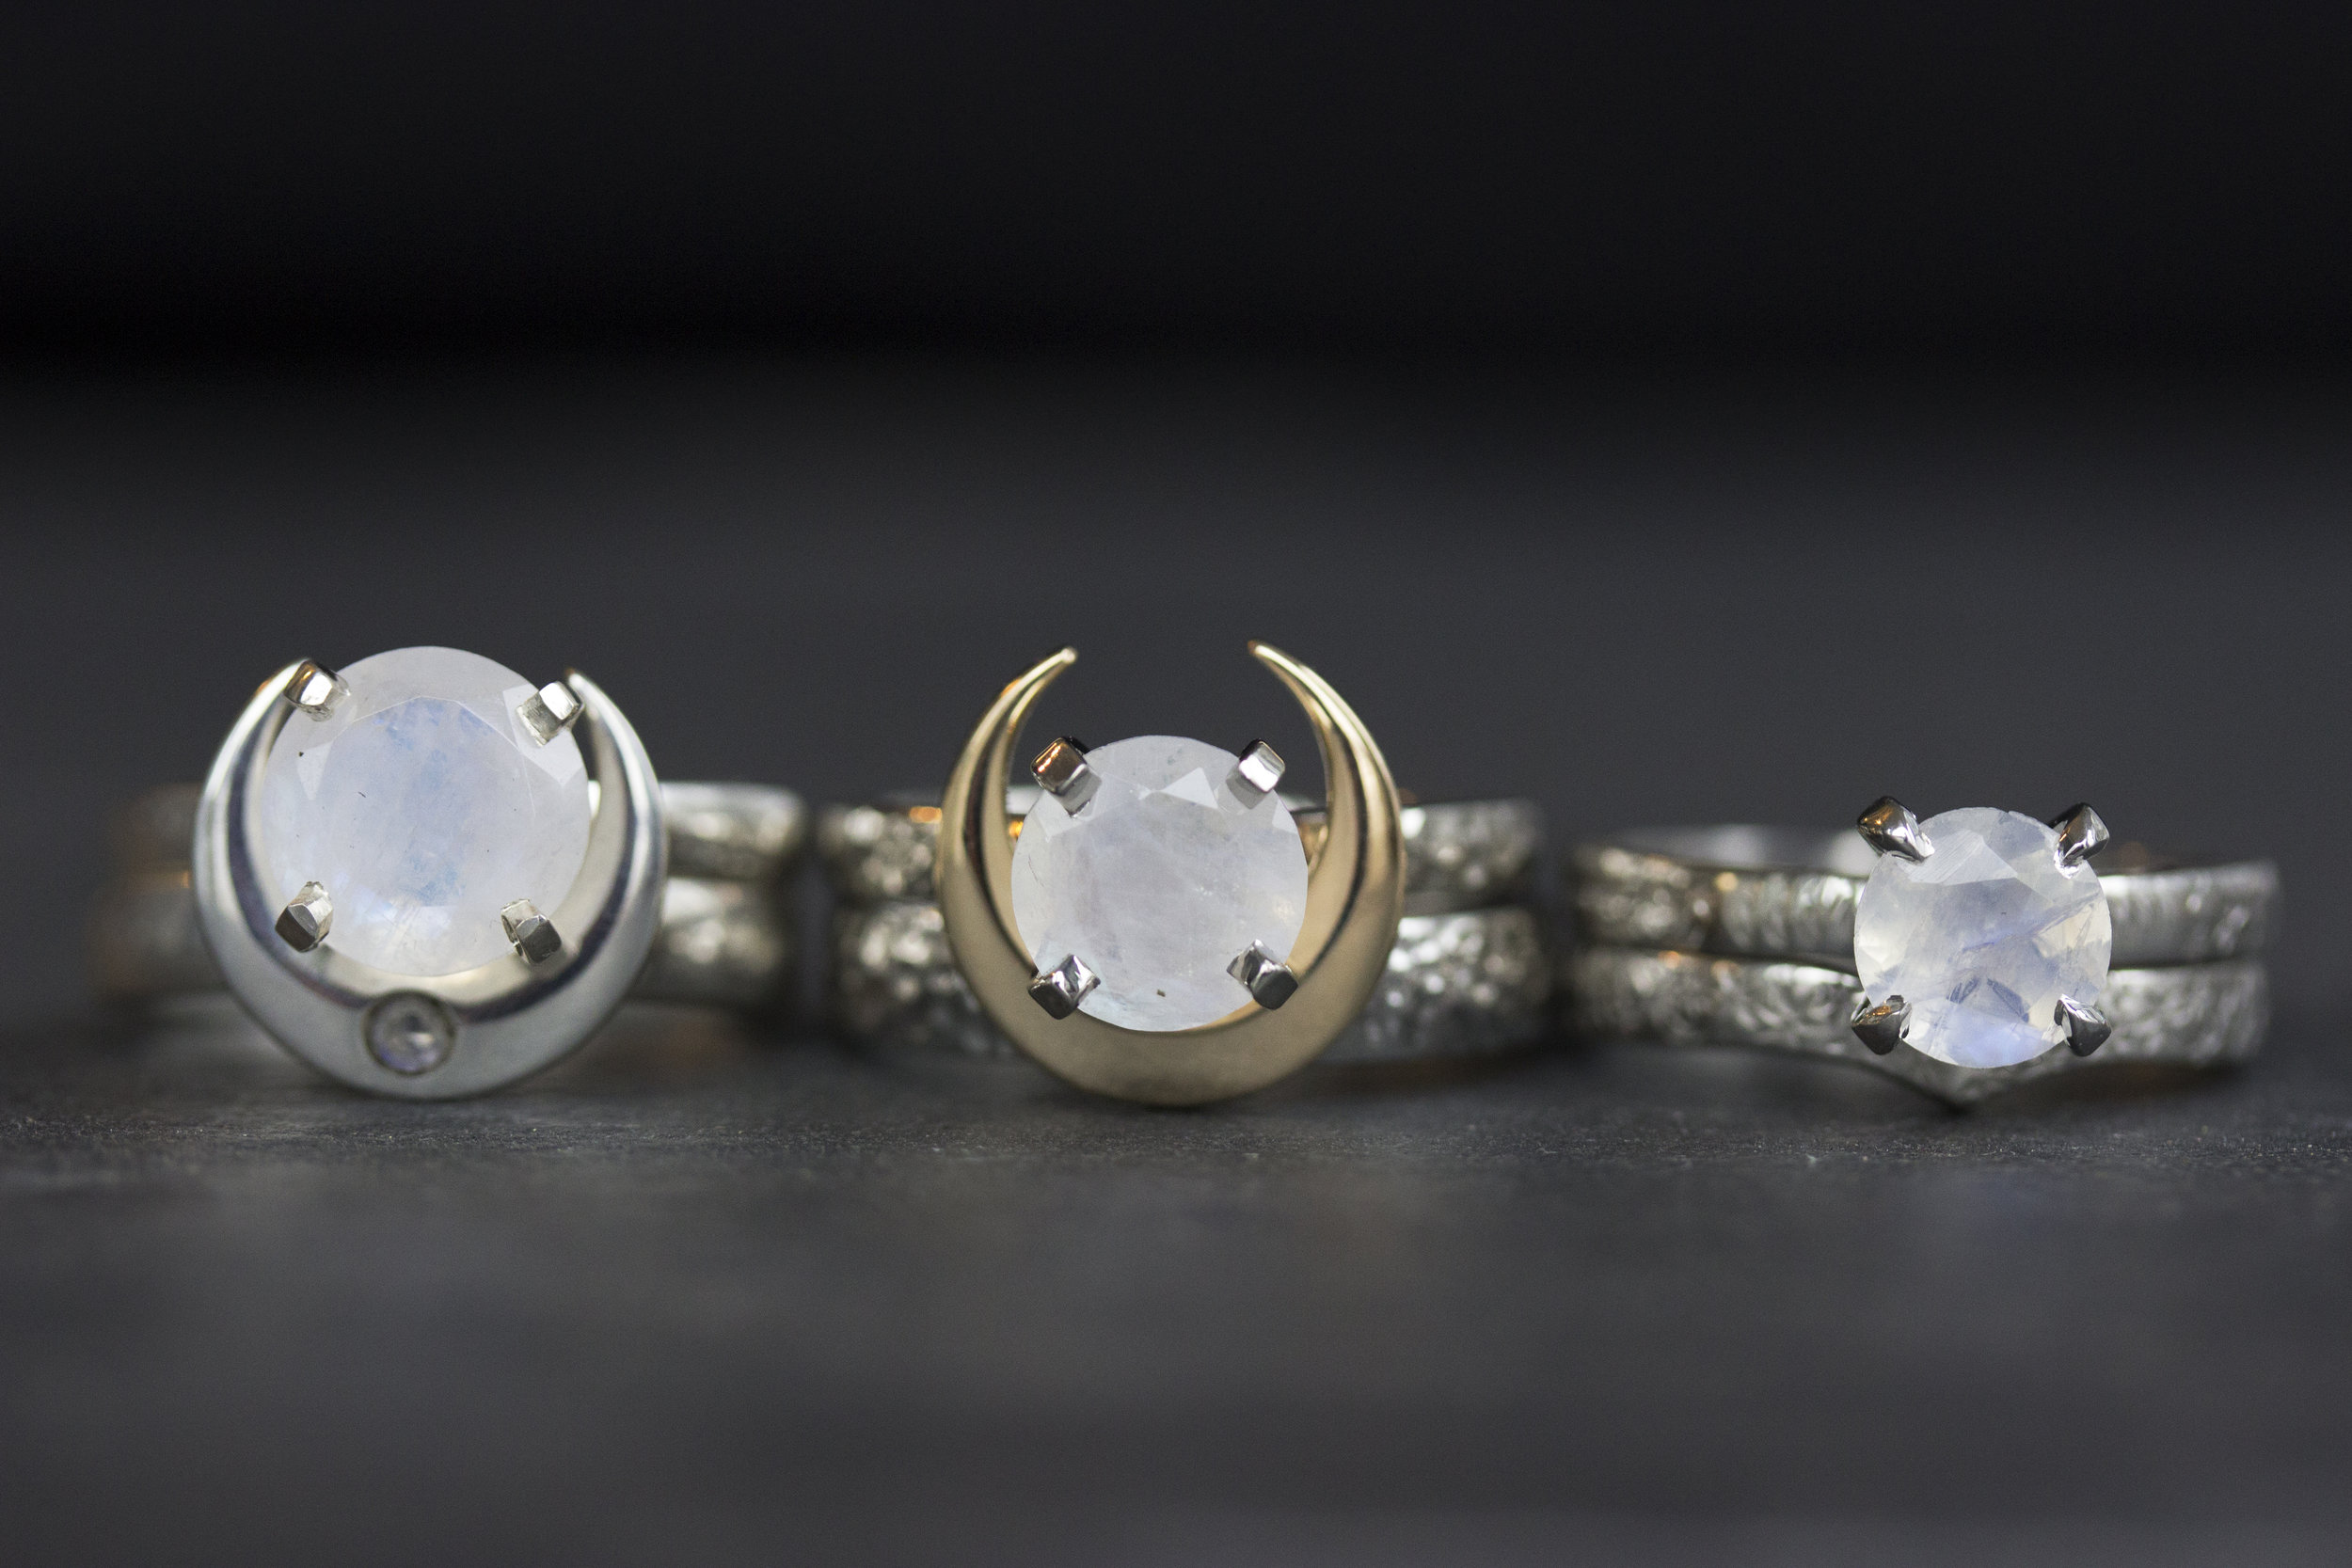 Left to Right:  The Perigee Moonstone and Moonstone Dusted Deadly Crescent, 8mm Hammered Artemis and a Mixed-Metal Crescent in 14k Yellow and White Gold, and the Atlantides and Pleiades in 14k White Gold. You can see these three sets in action in the video below. XO, P.